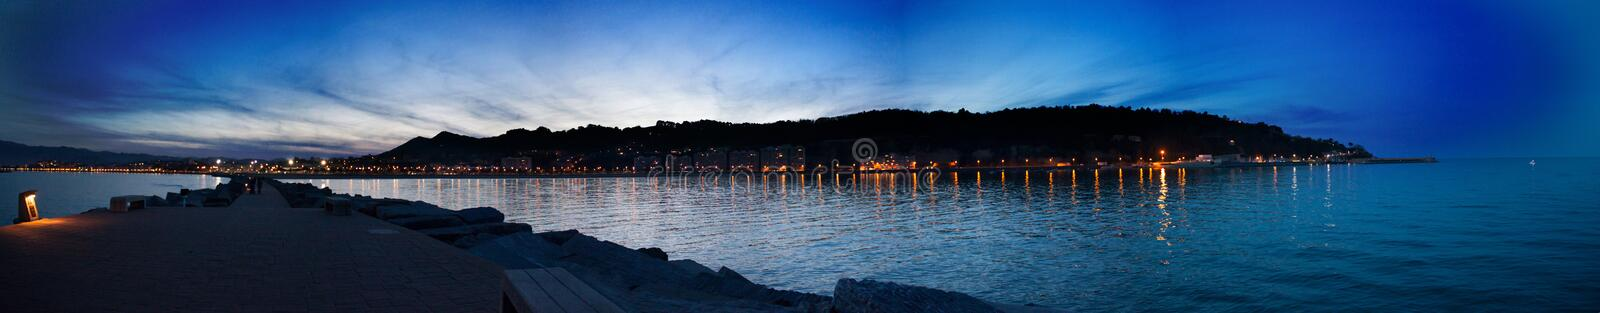 Superb evening atmosphere in Hondarribia/Fuenterrabía seen from the jetty. Basque Country, Spain royalty free stock photo